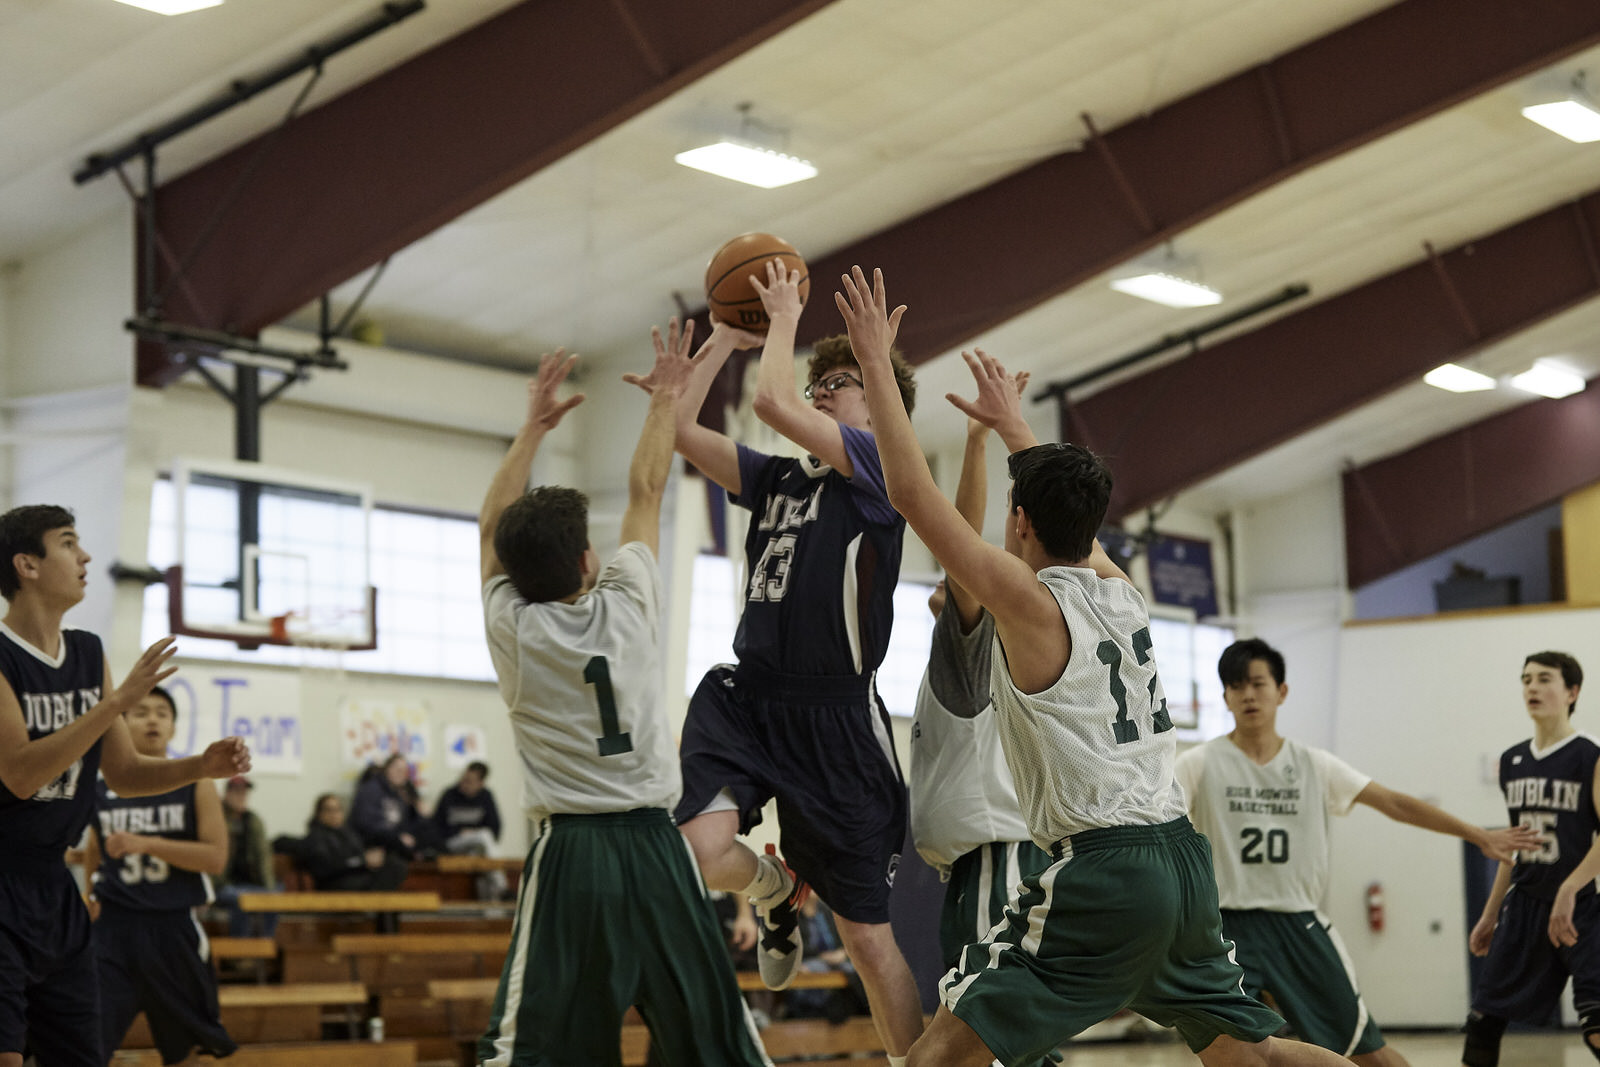 Dublin JV Boys Basketball vs High Mowing School - Jan 26 2019 - 0190.jpg